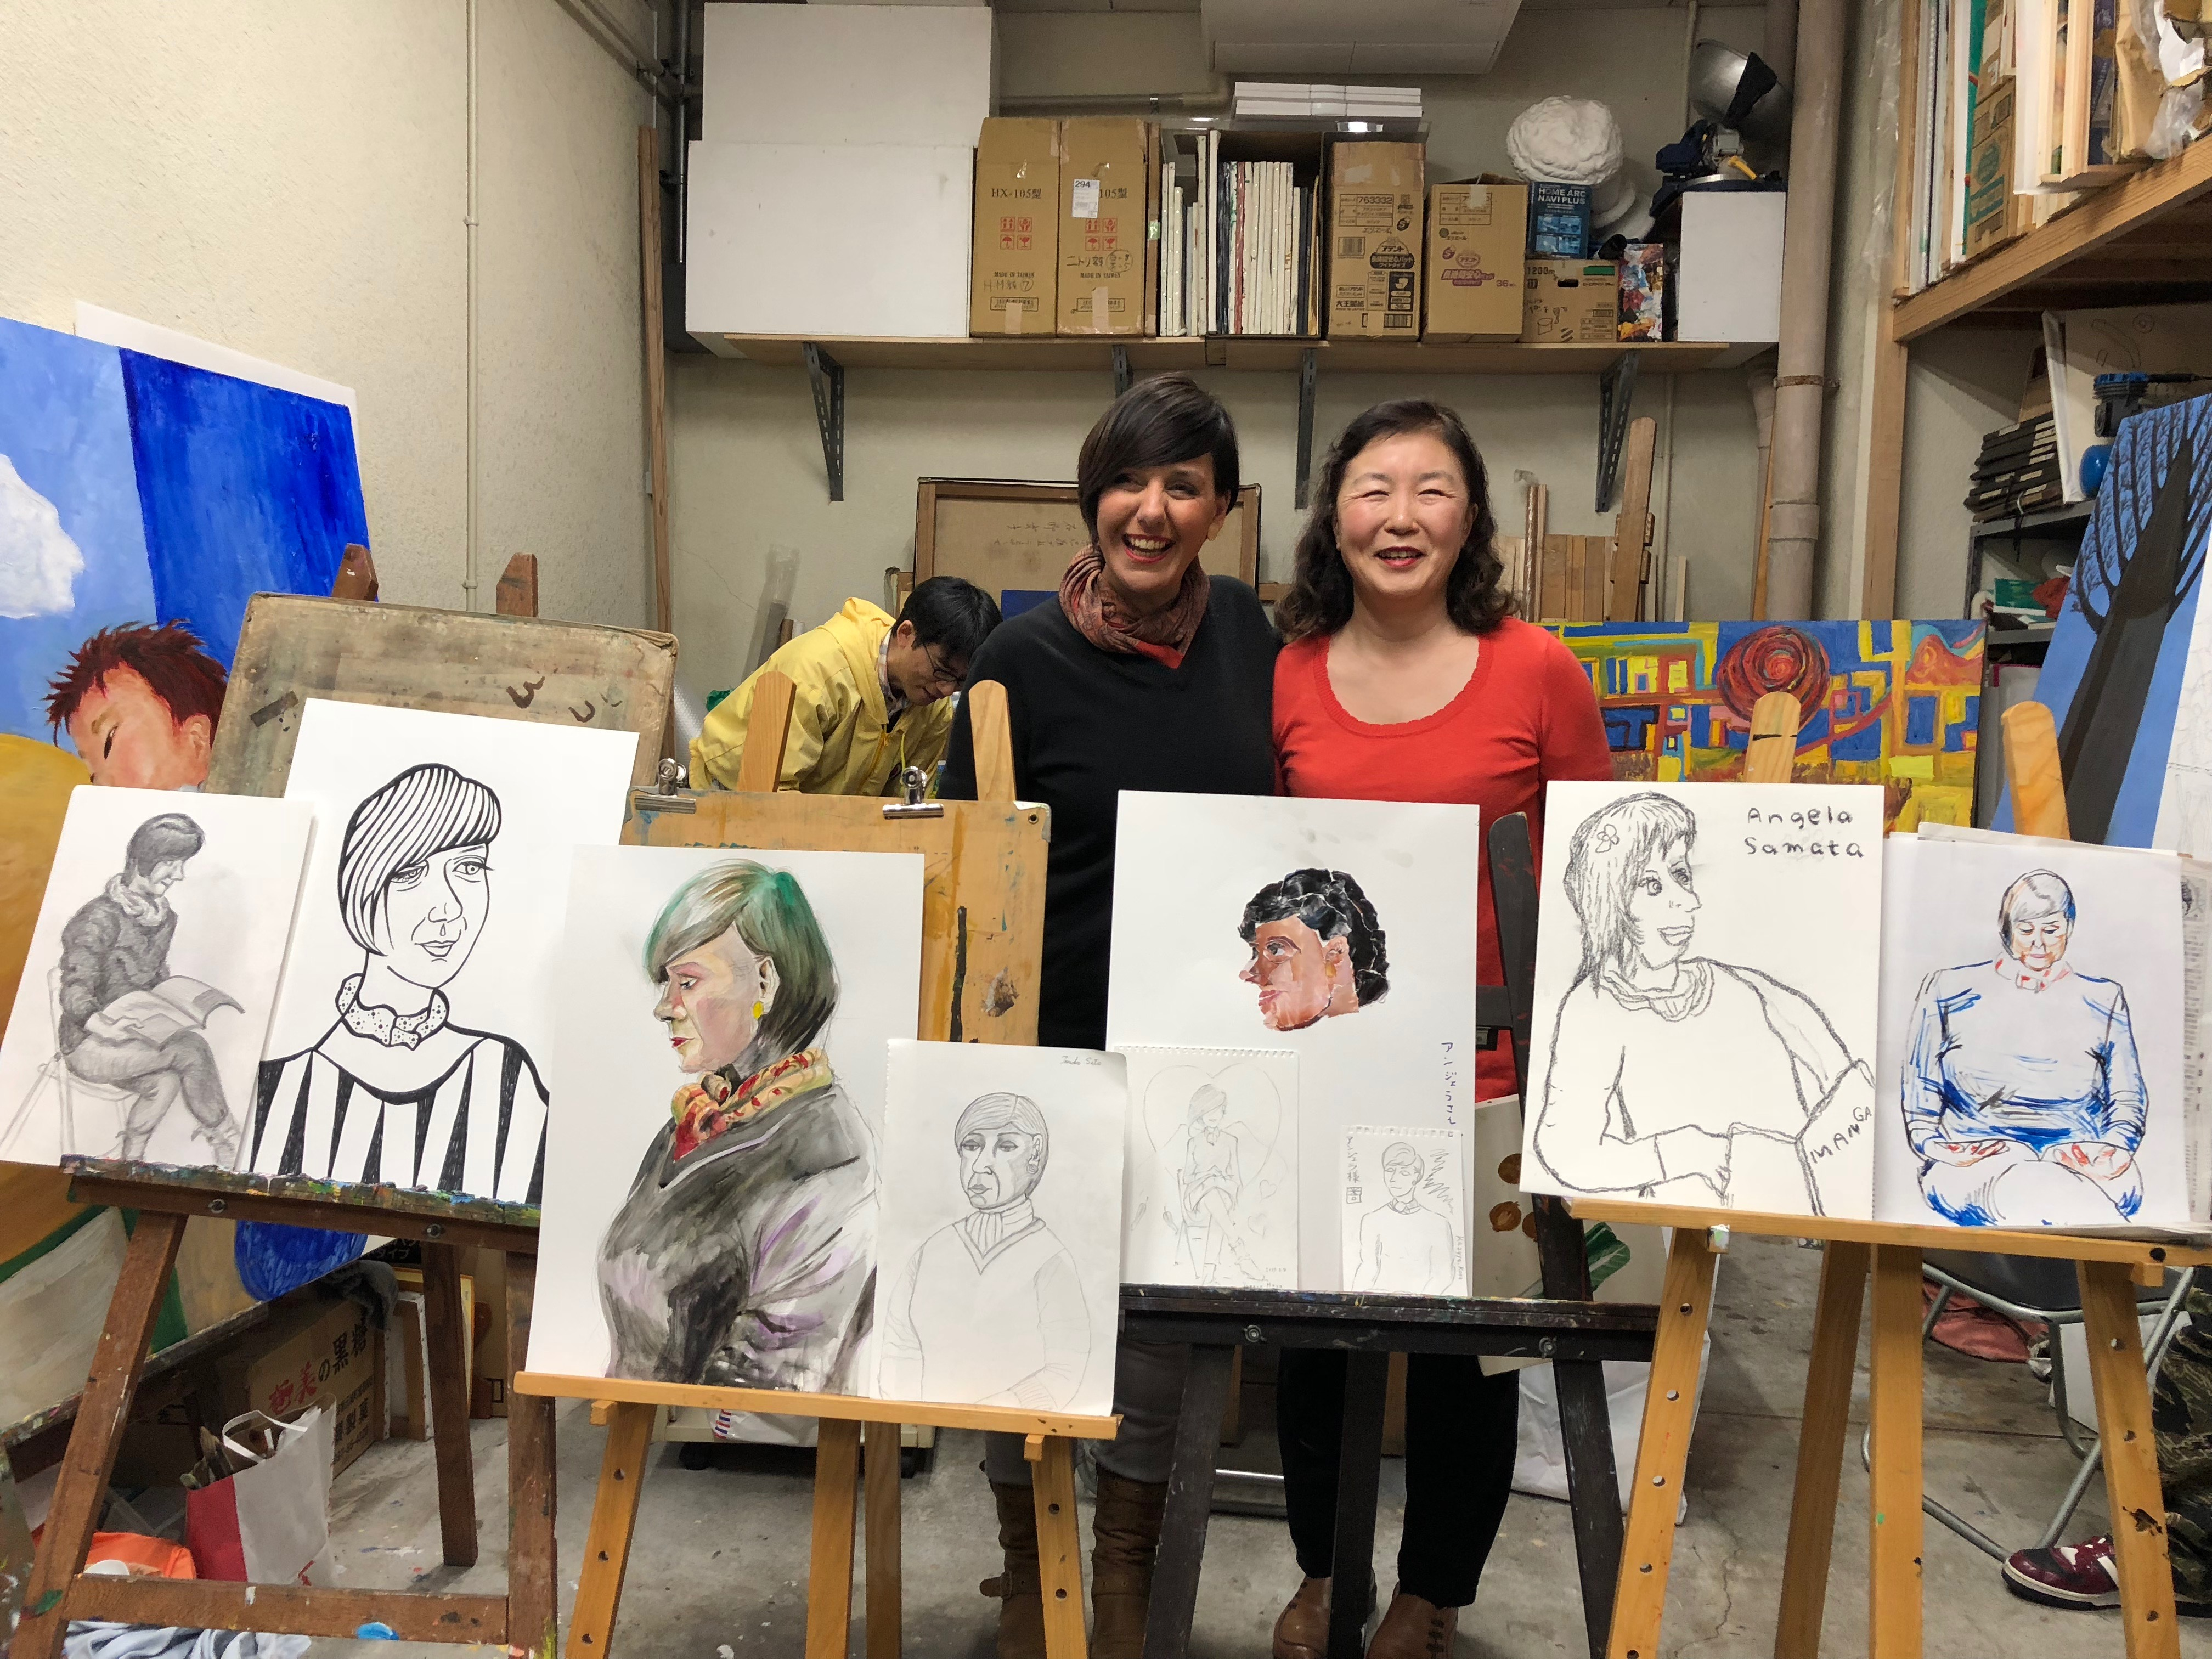 Two women are standing in an art workshop surrounded by easels and canvases. All the pictures and paintings are of Angela Samata who is on the left of the photo.